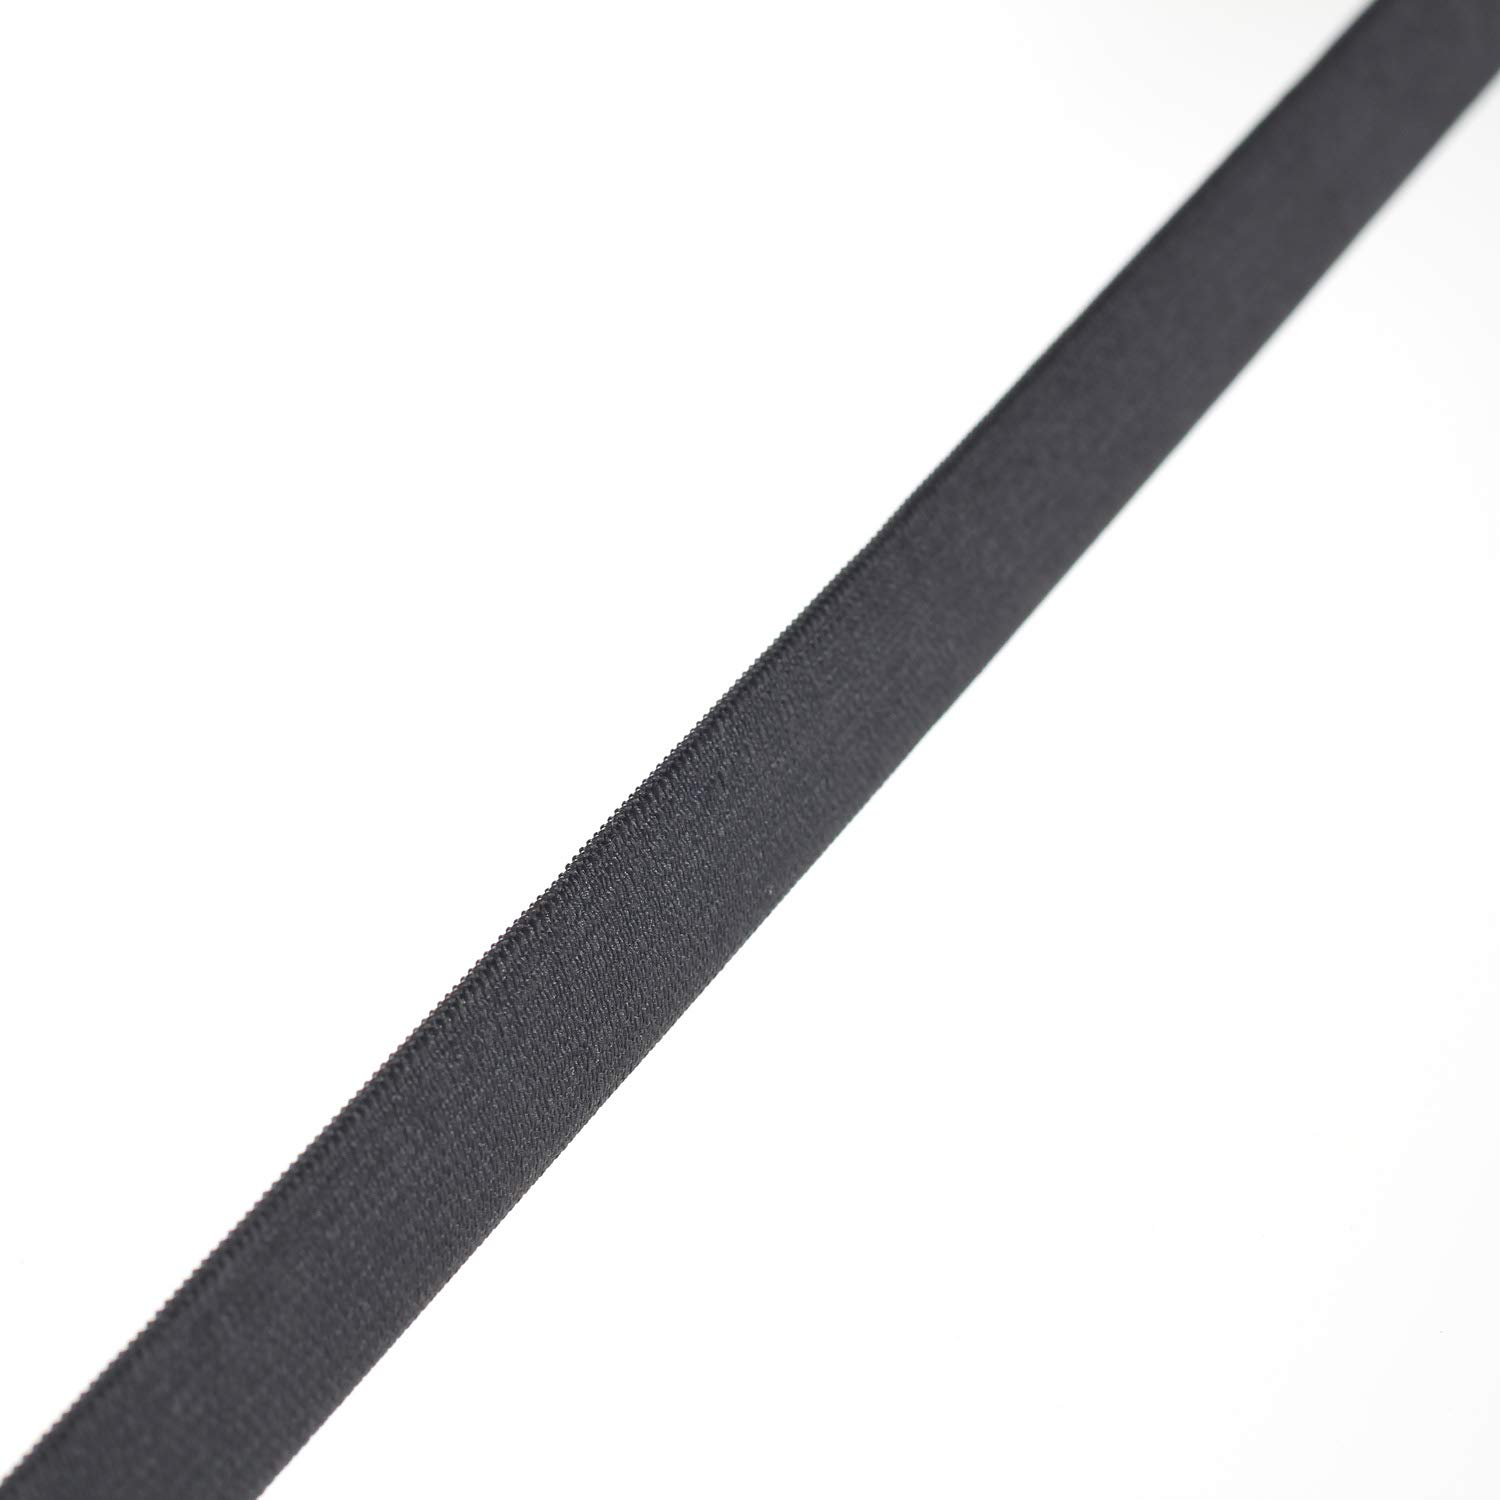 TUKA 40M x 20mm Elastic Band Sewing Elastic Ribbon Bands Webbing Strap Cord for Craft Sewing Accessories TKB5005 Black 43.74 Yards 20 mm wide 40 Meter